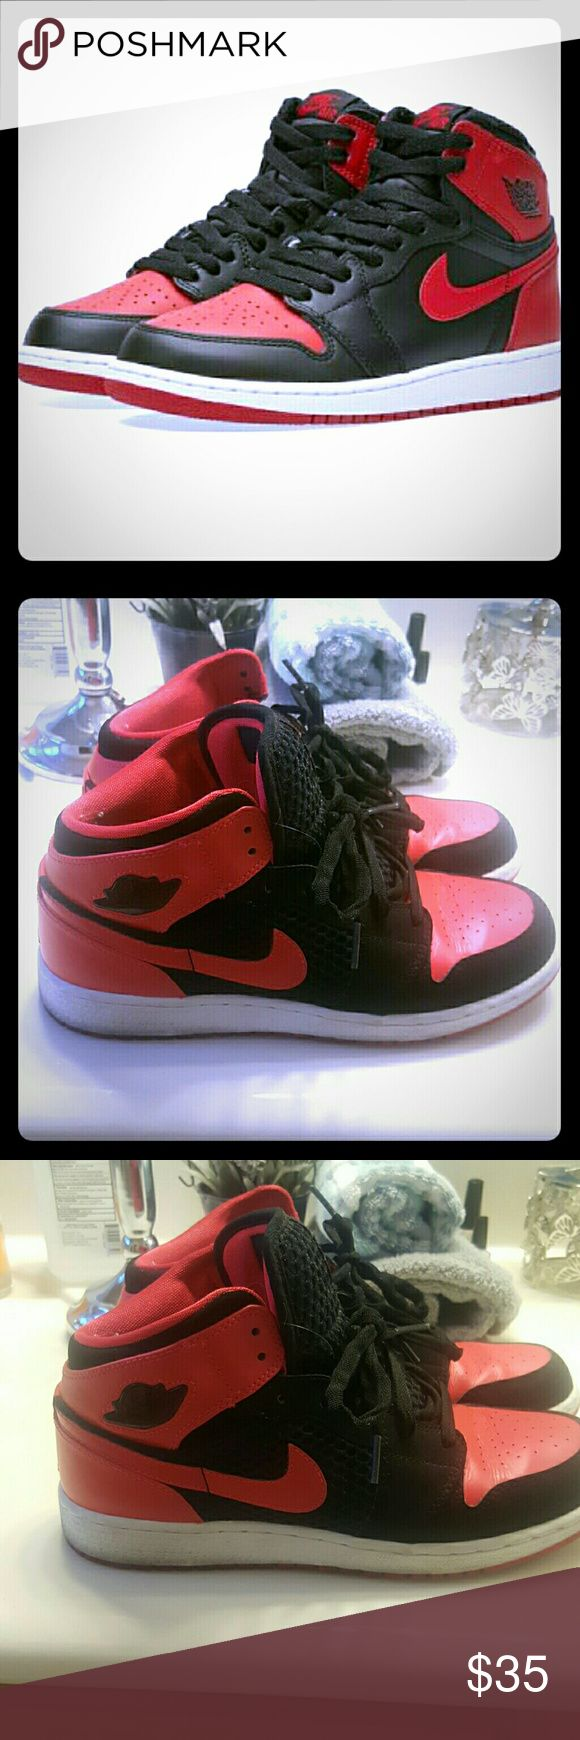 Black & red JORDANS Black & red JORDANS have been worn has some dirt around bottoms but can be removed. Clean smoke free odor free home nike Shoes Sneakers